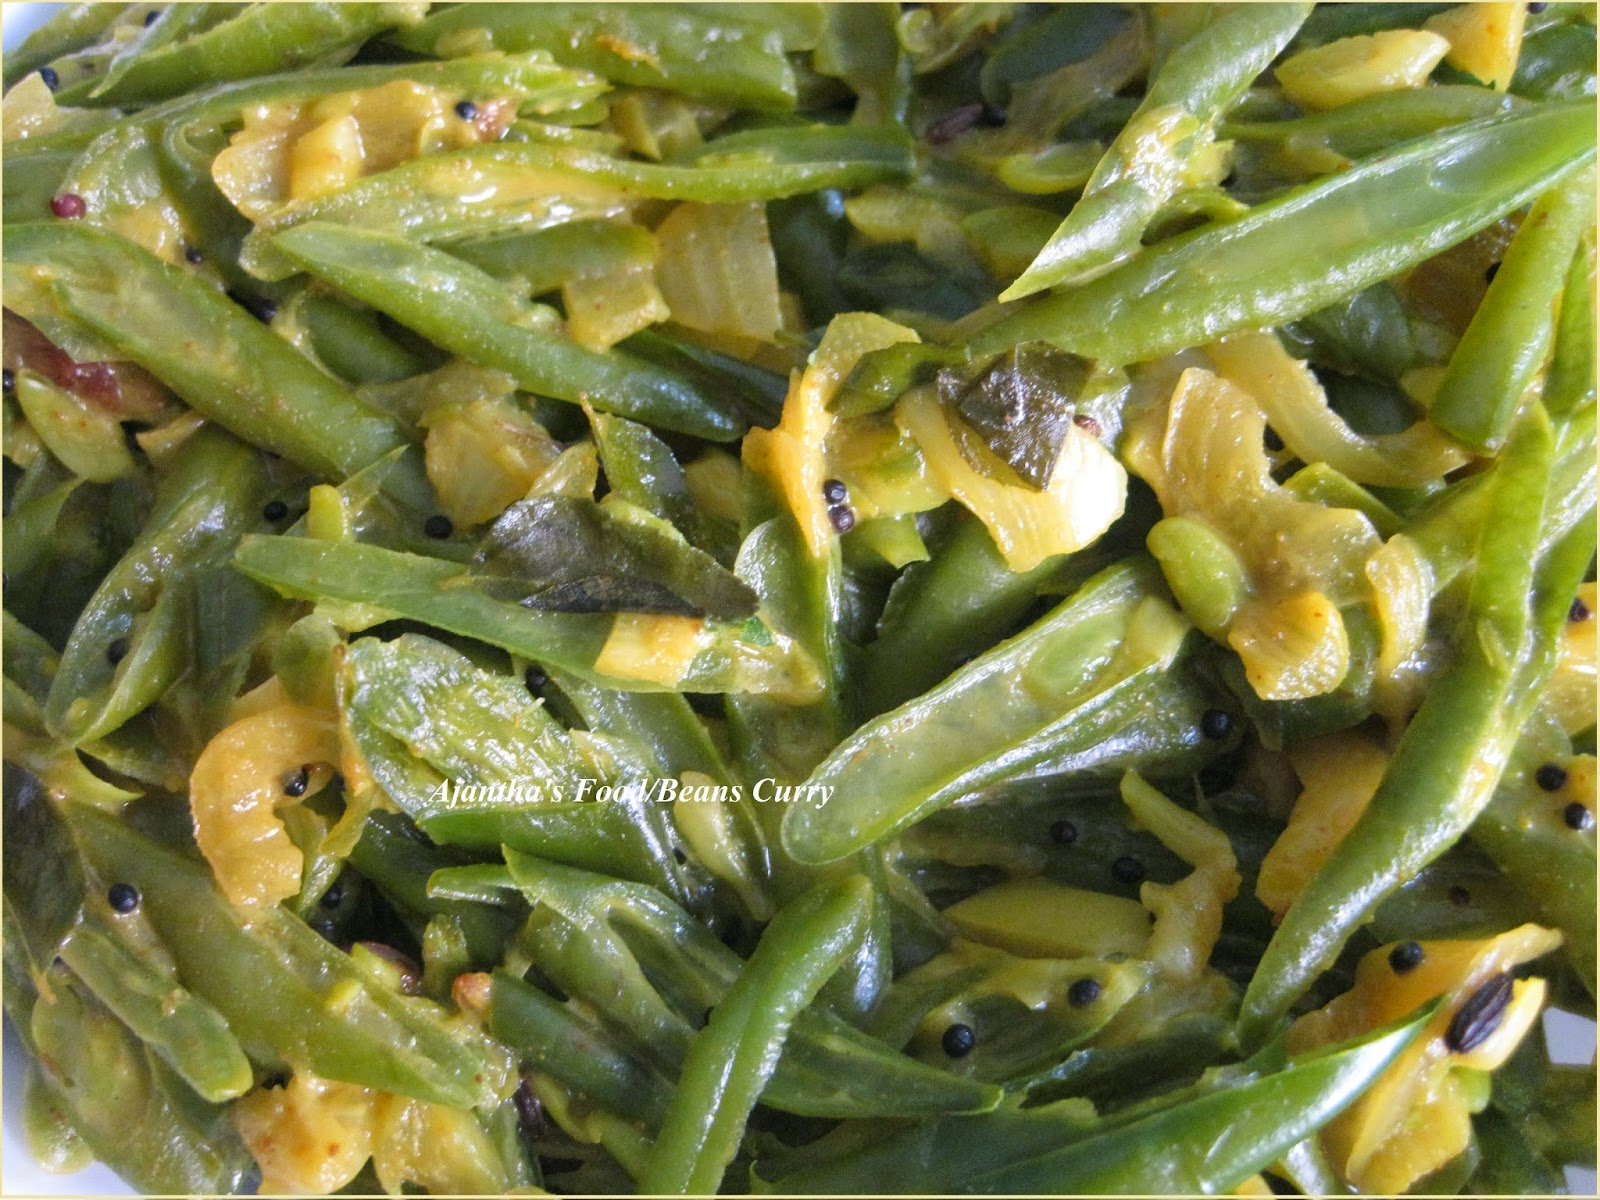 Ajantha's Food/ srilankan style Green Beans Curry